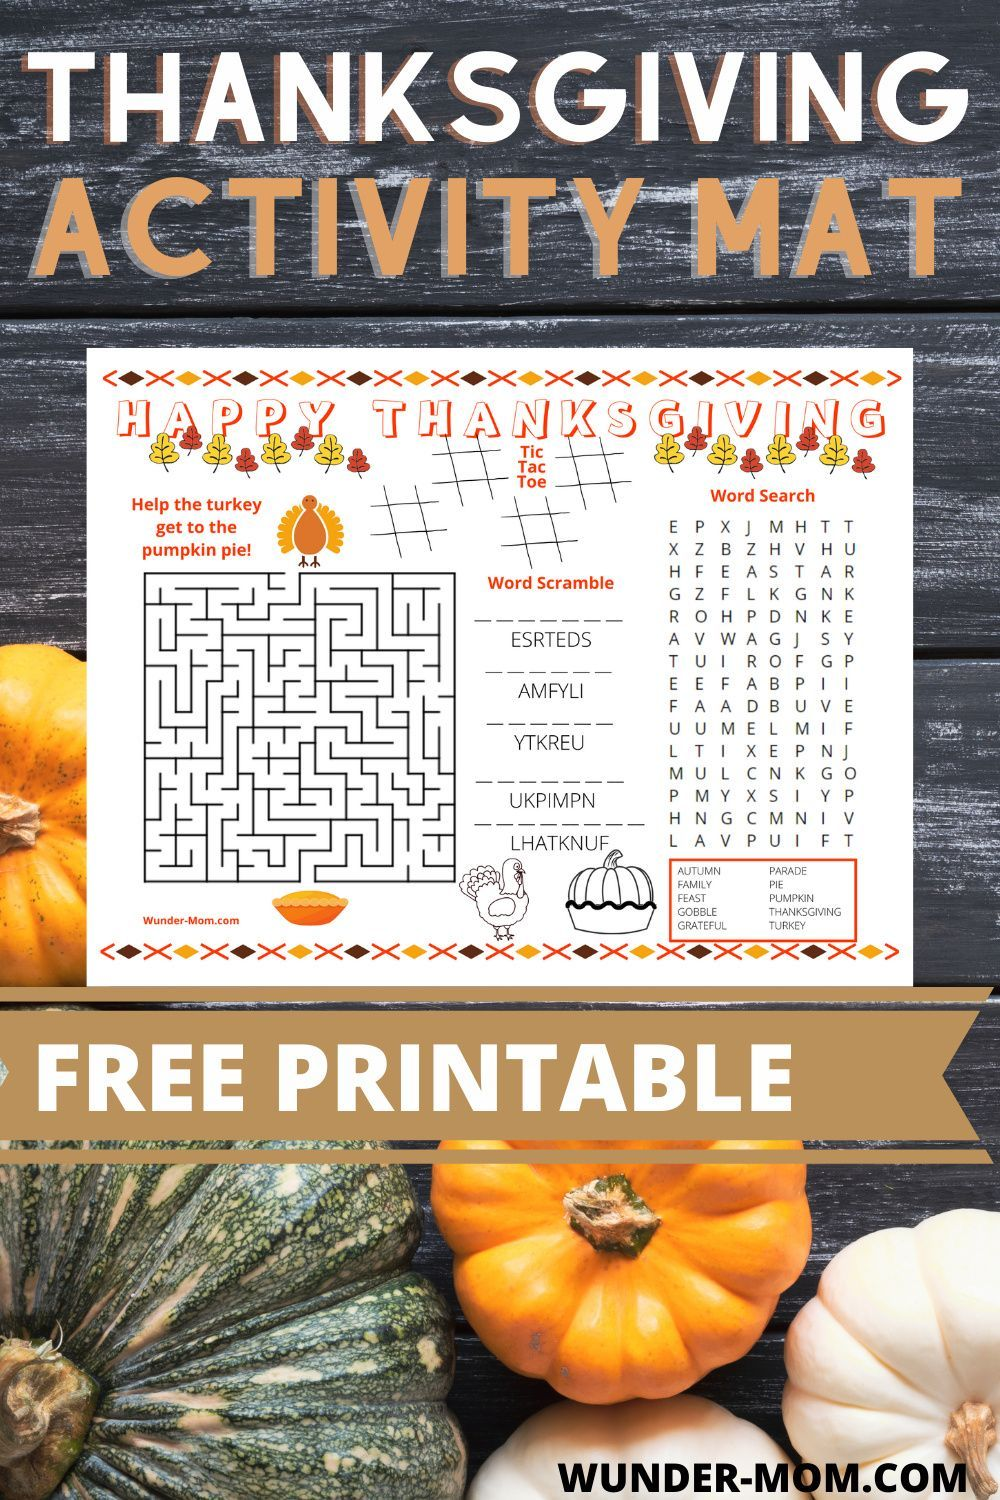 Printable Thanksgiving Activity Mat For Kids In 2020 Thanksgiving Activities Thanksgiving Fun Autumn Activities For Kids